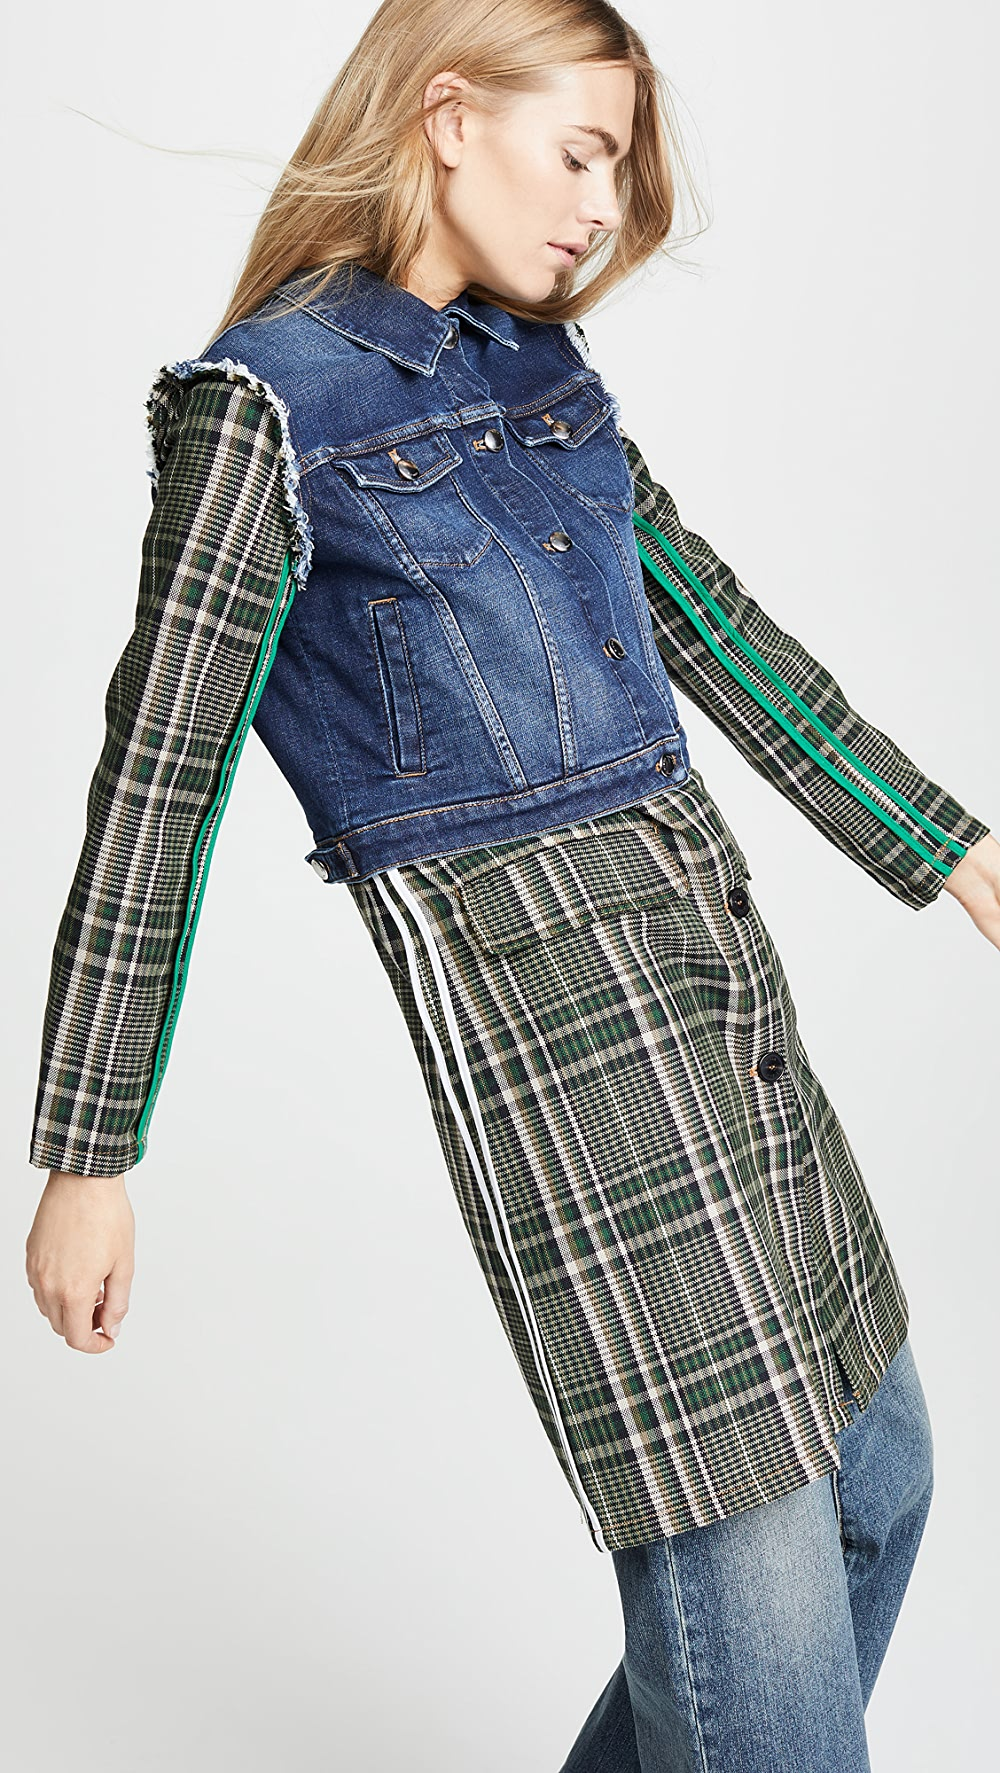 Active Sonia Rykiel - Denim And Plaid Mixed Media Coat With The Best Service